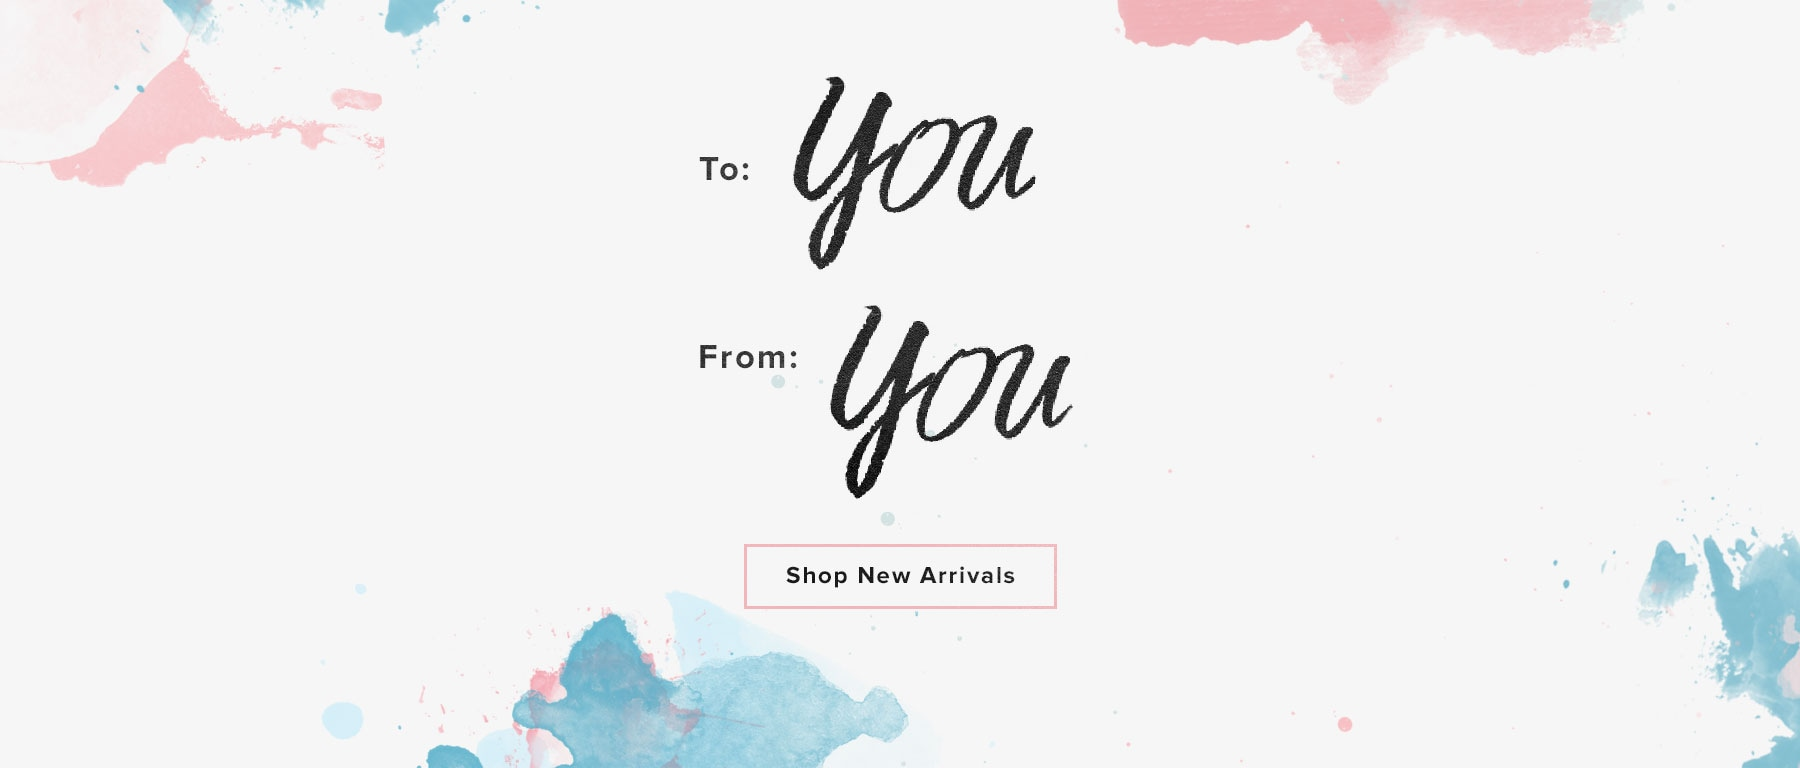 To: You, From: You. Shop New Arrivals.